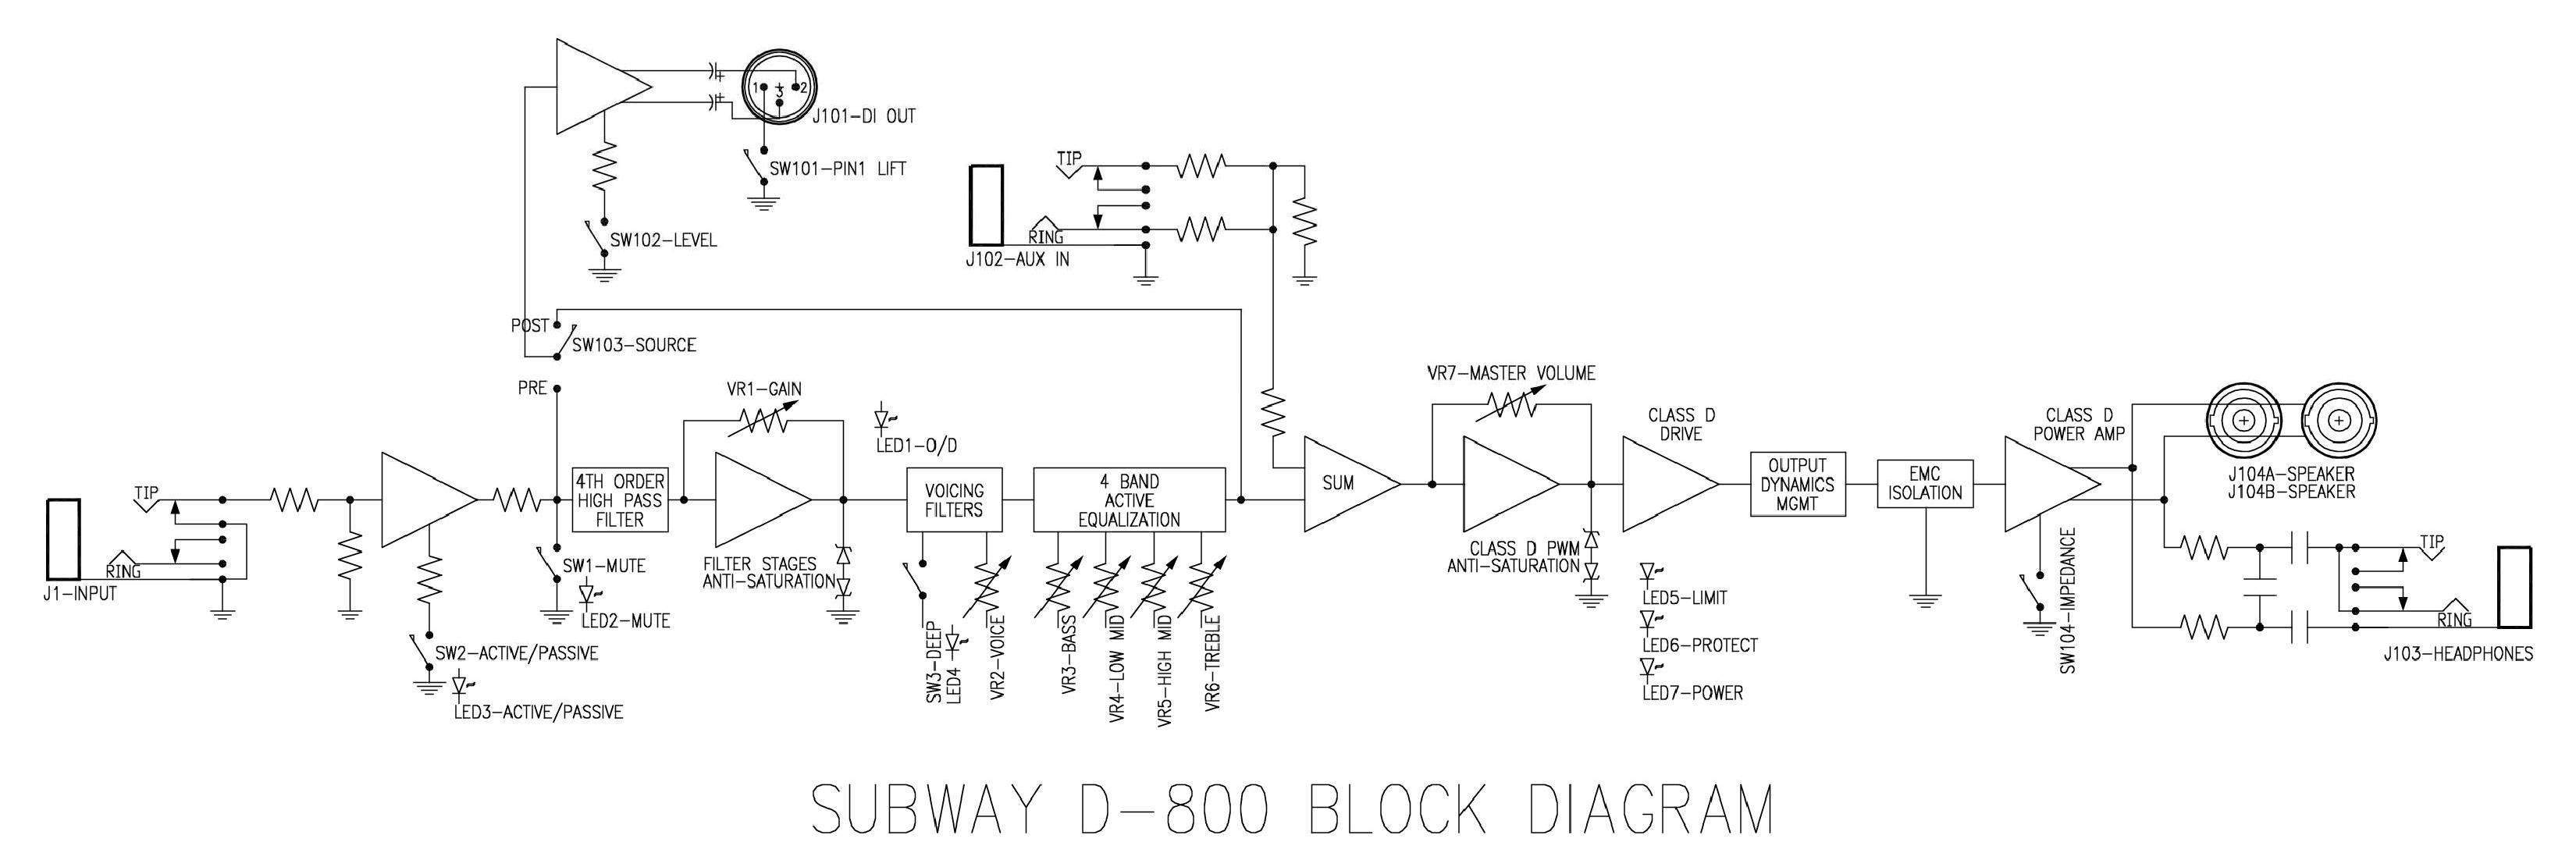 Official Mesa Boogie Subway Series Club | Page 289 ... on